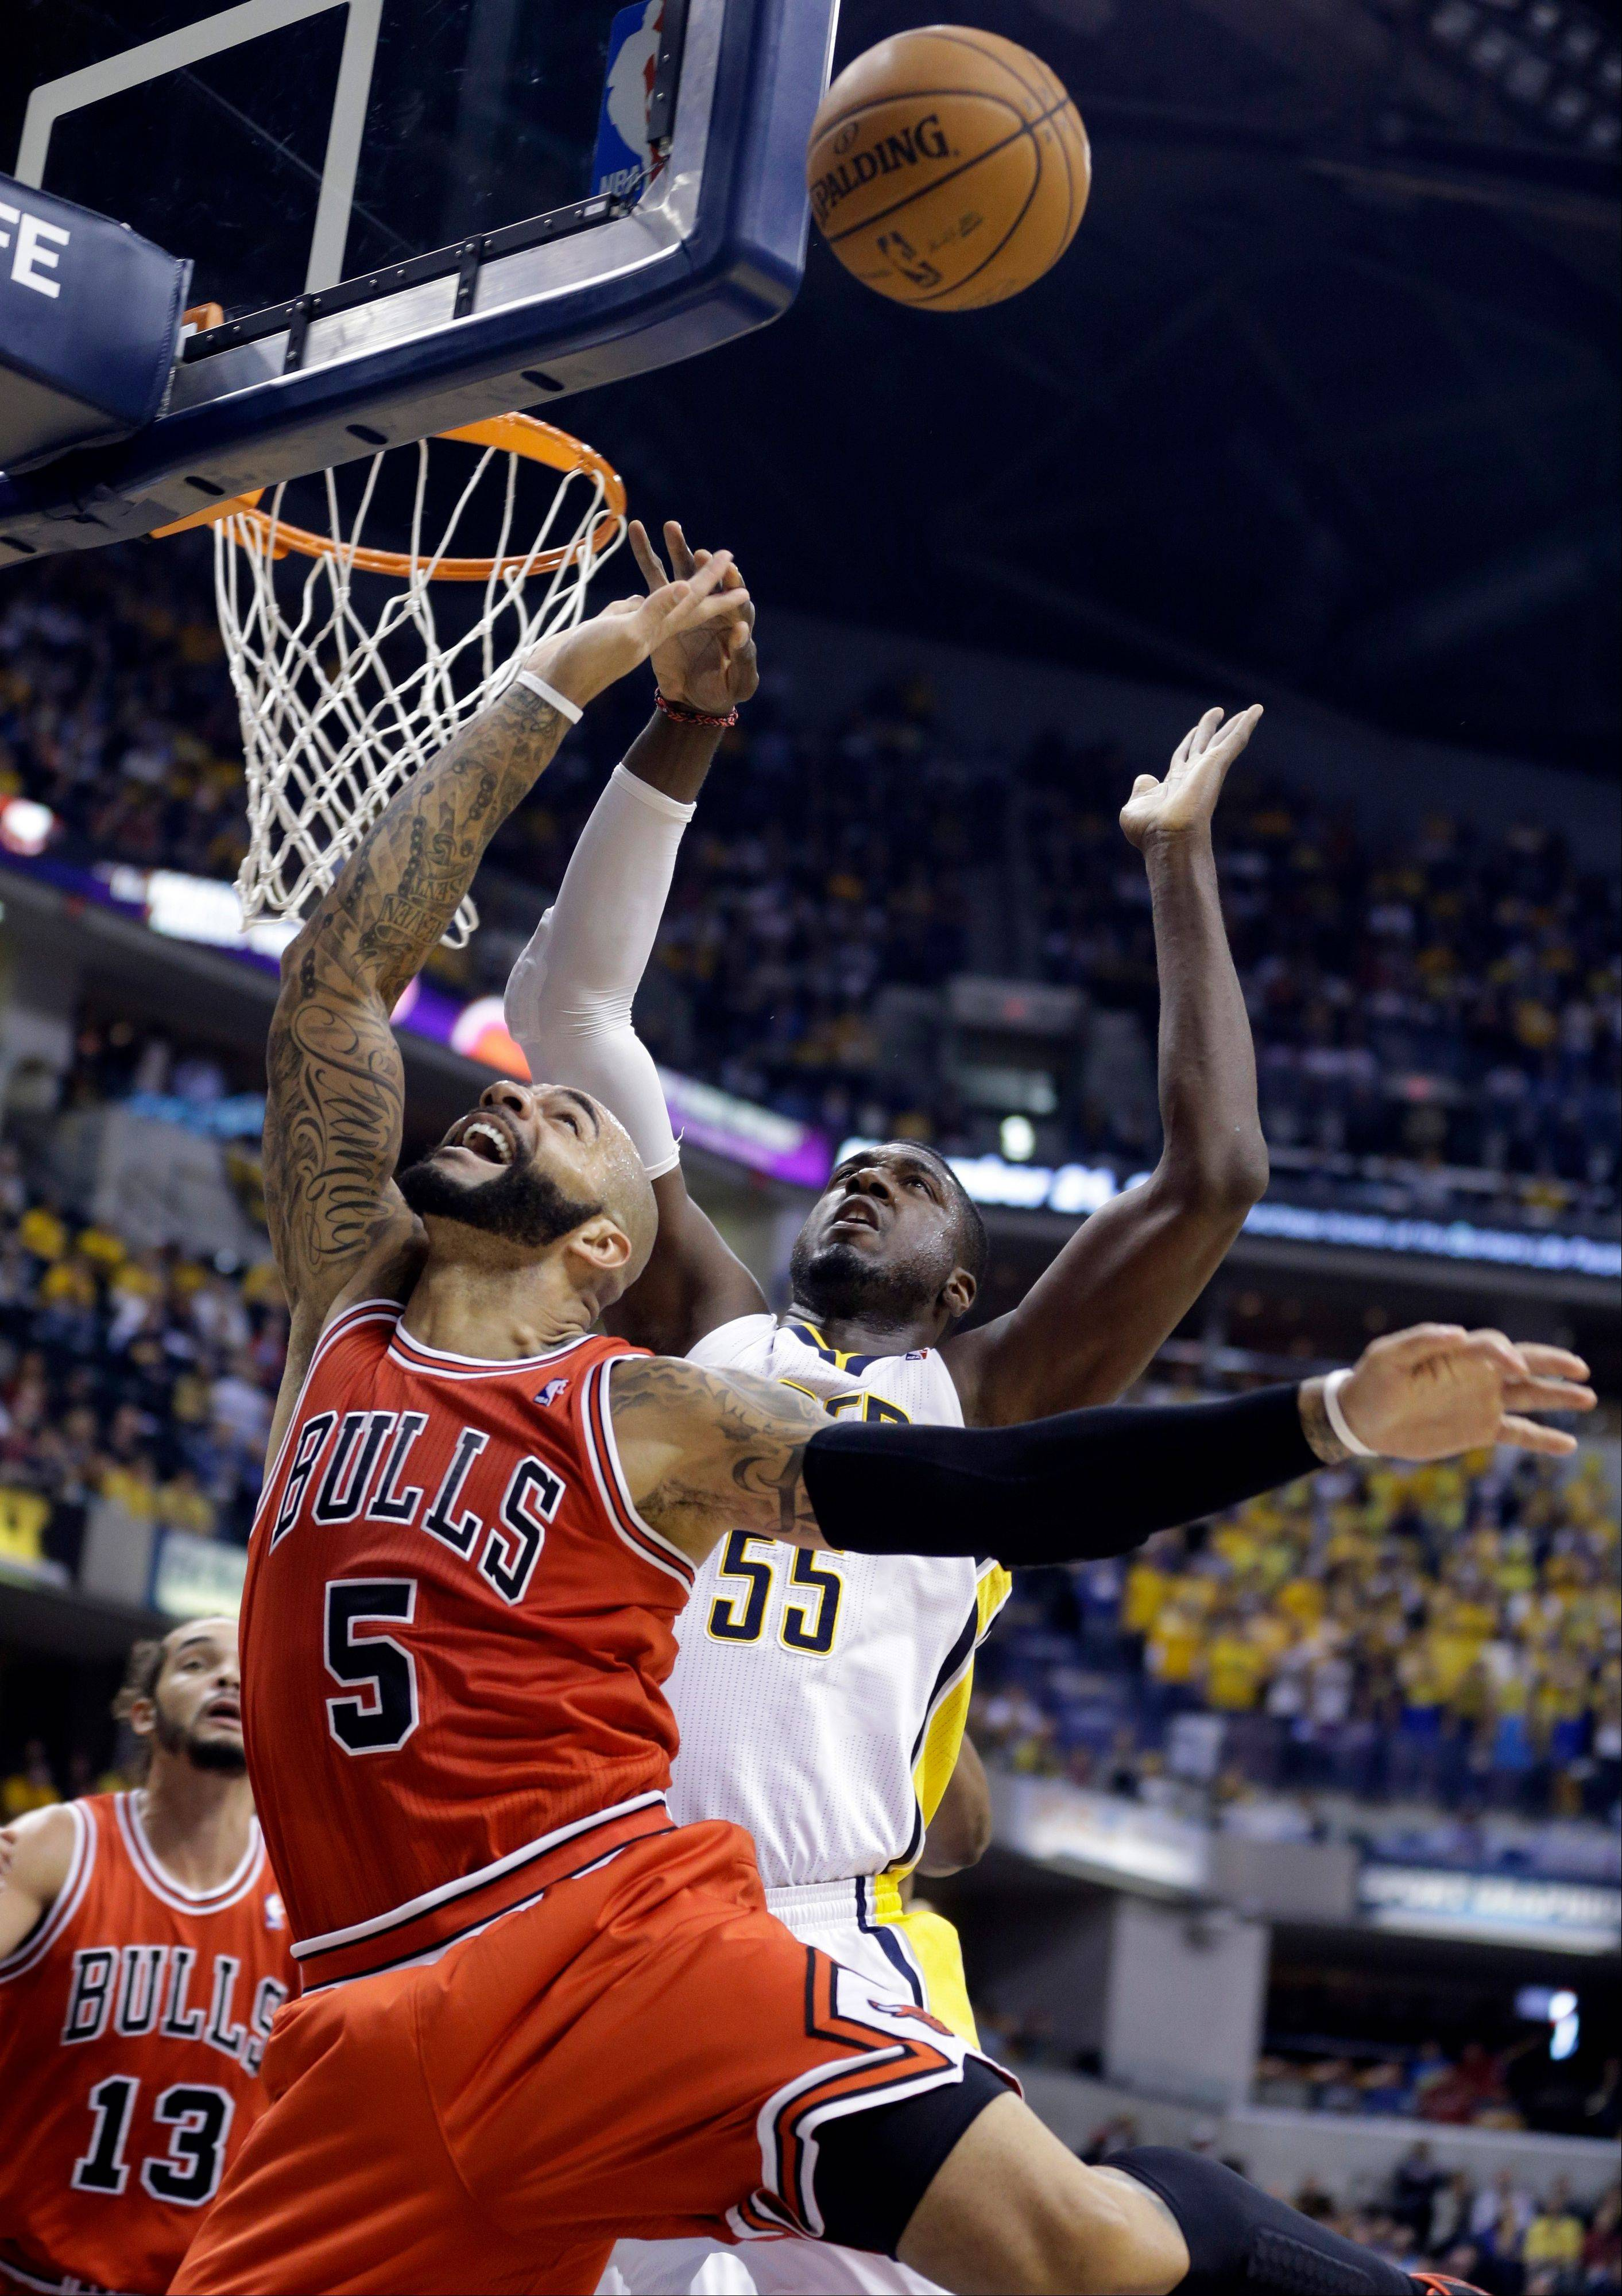 Indiana Pacers center Roy Hibbert comes from behind to block the shot of Chicago Bulls forward Carlos Boozer in the first half of an NBA basketball game in Indianapolis, Wednesday, Nov. 6, 2013. (AP Photo/Michael Conroy)